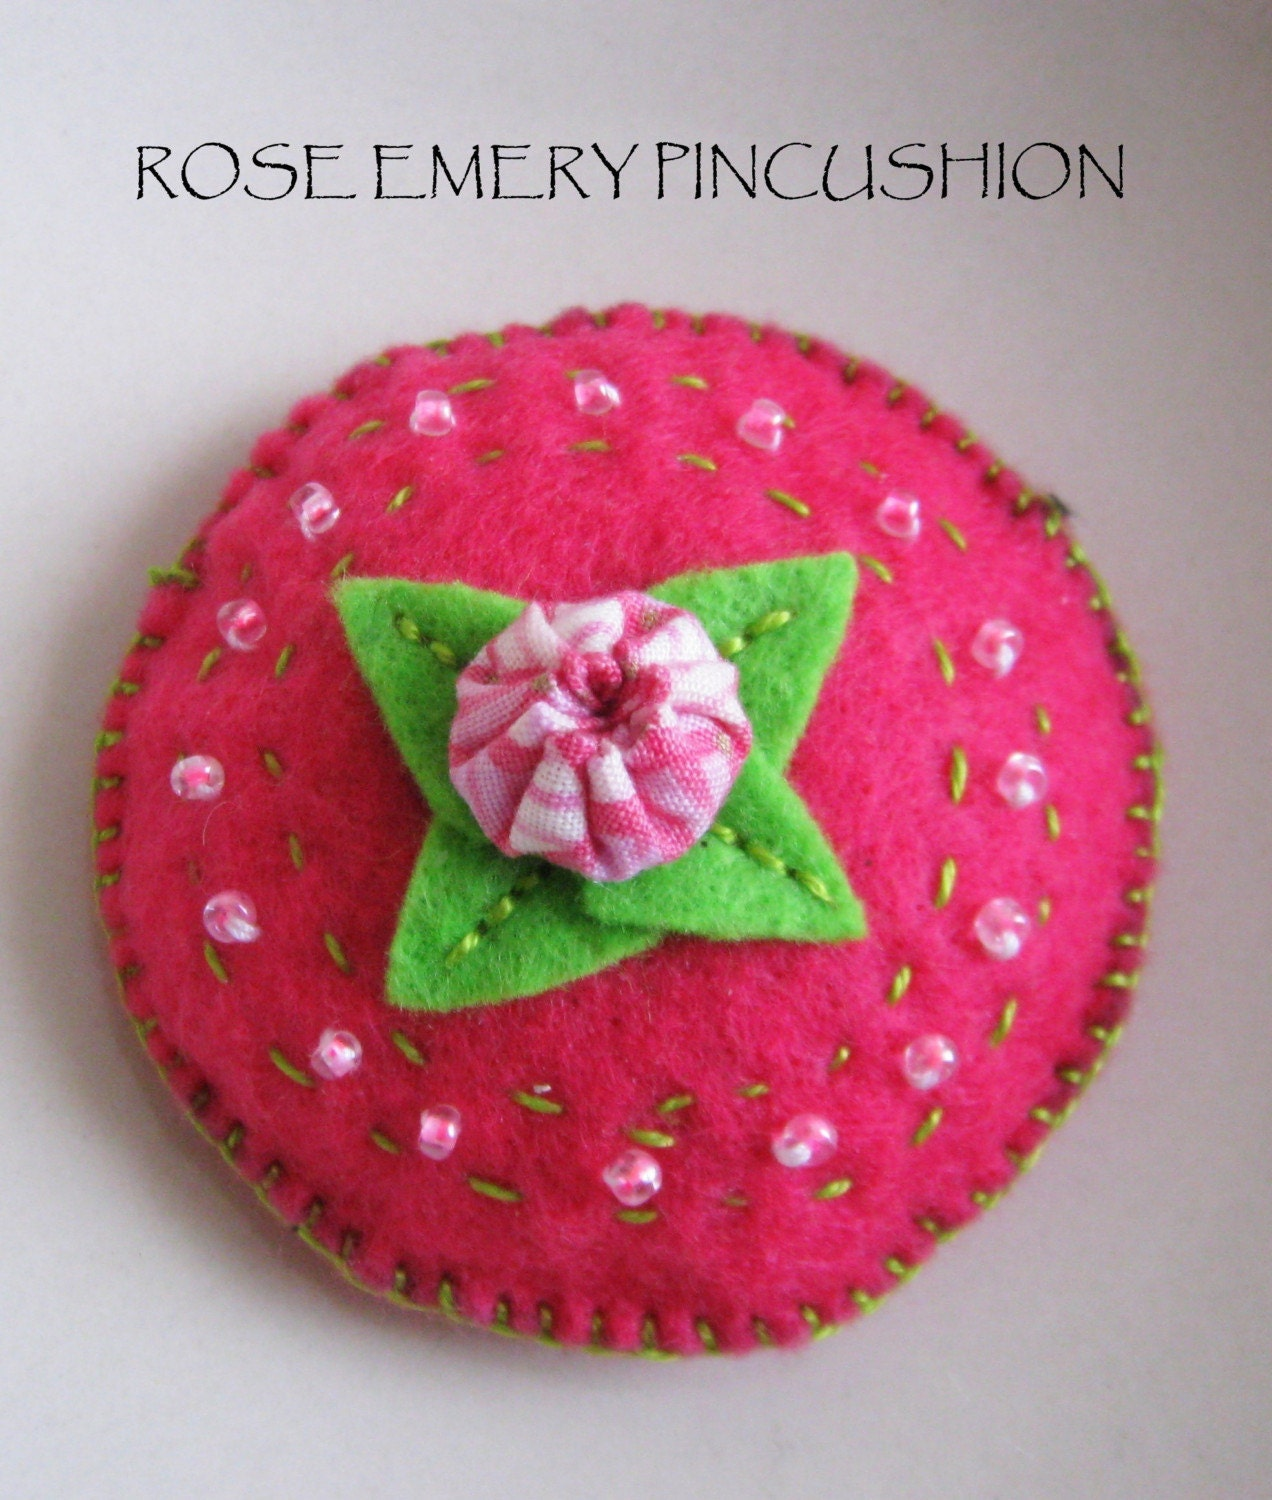 Rose Emery Pincushion     Keep Your Needles Clean and Sharp WEEKEND DEALS 7/24-7/26/2009  BUY 2 Emery Pincushion and get 1 Evil Eye Pincushion Free by NAKPUNAR on Etsy from etsy.com